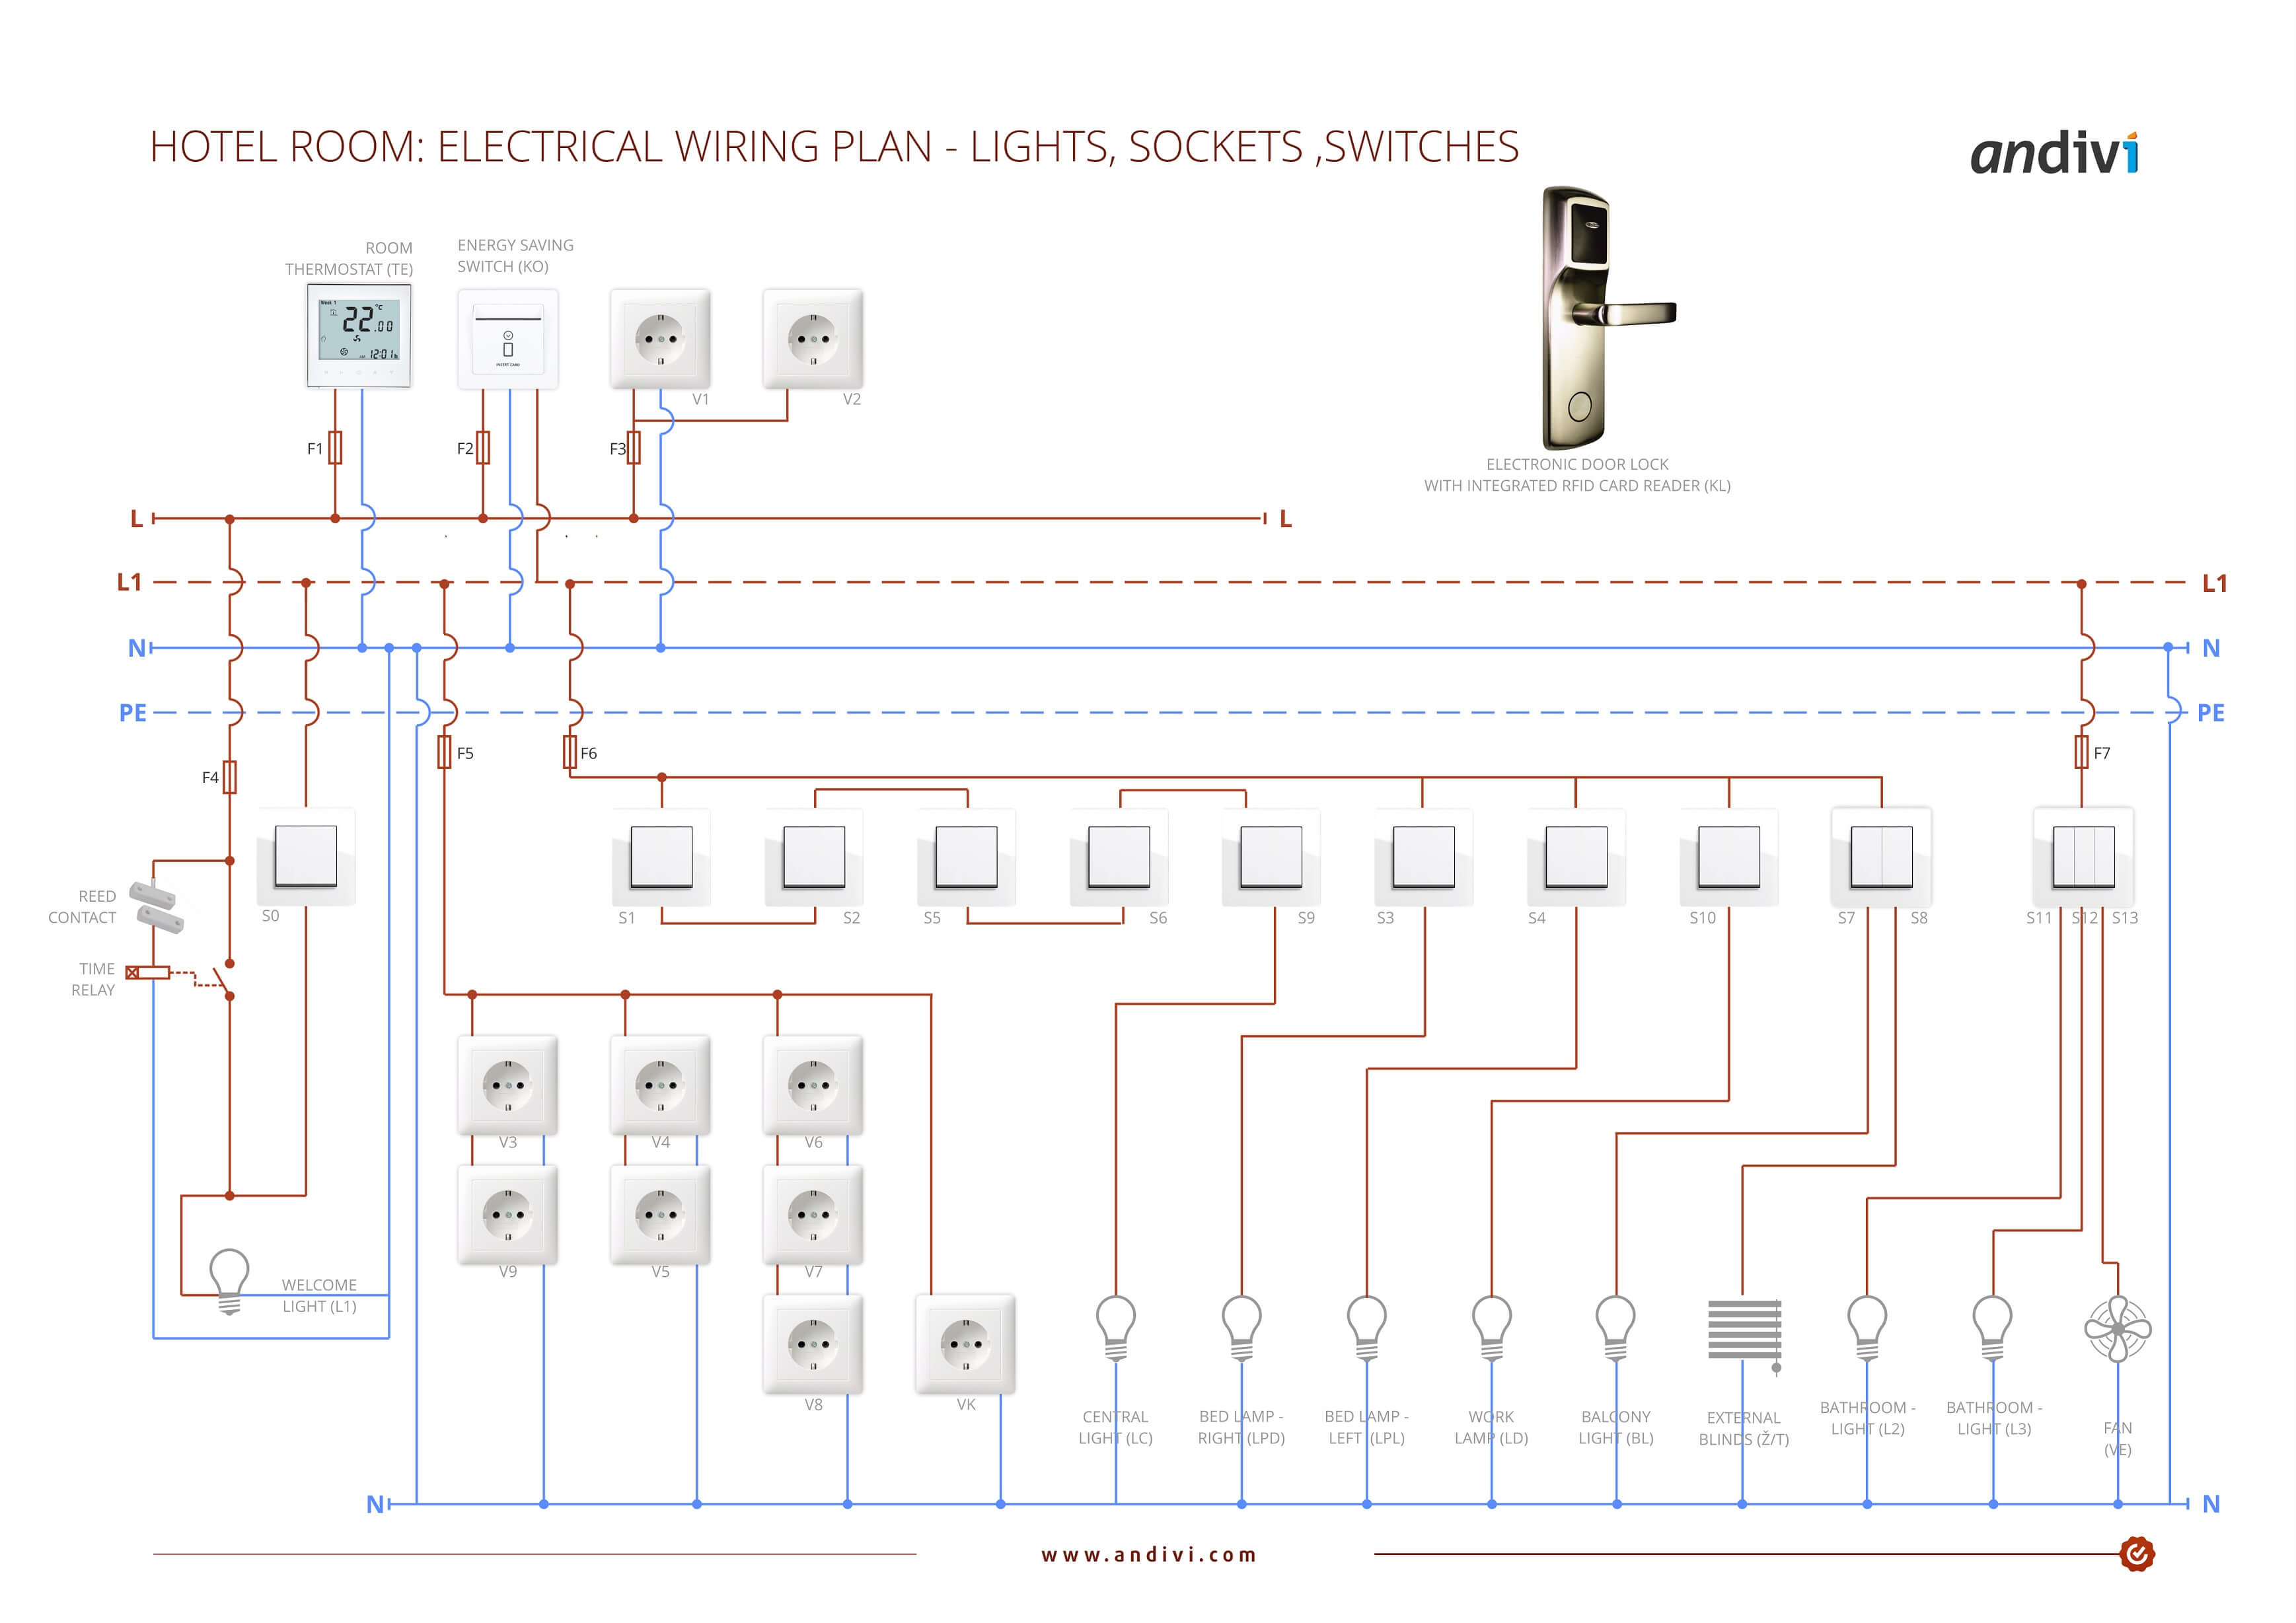 building electrical installation wiring diagram garmin transducer installations layout plan for a typical hotel room lights sockets switches